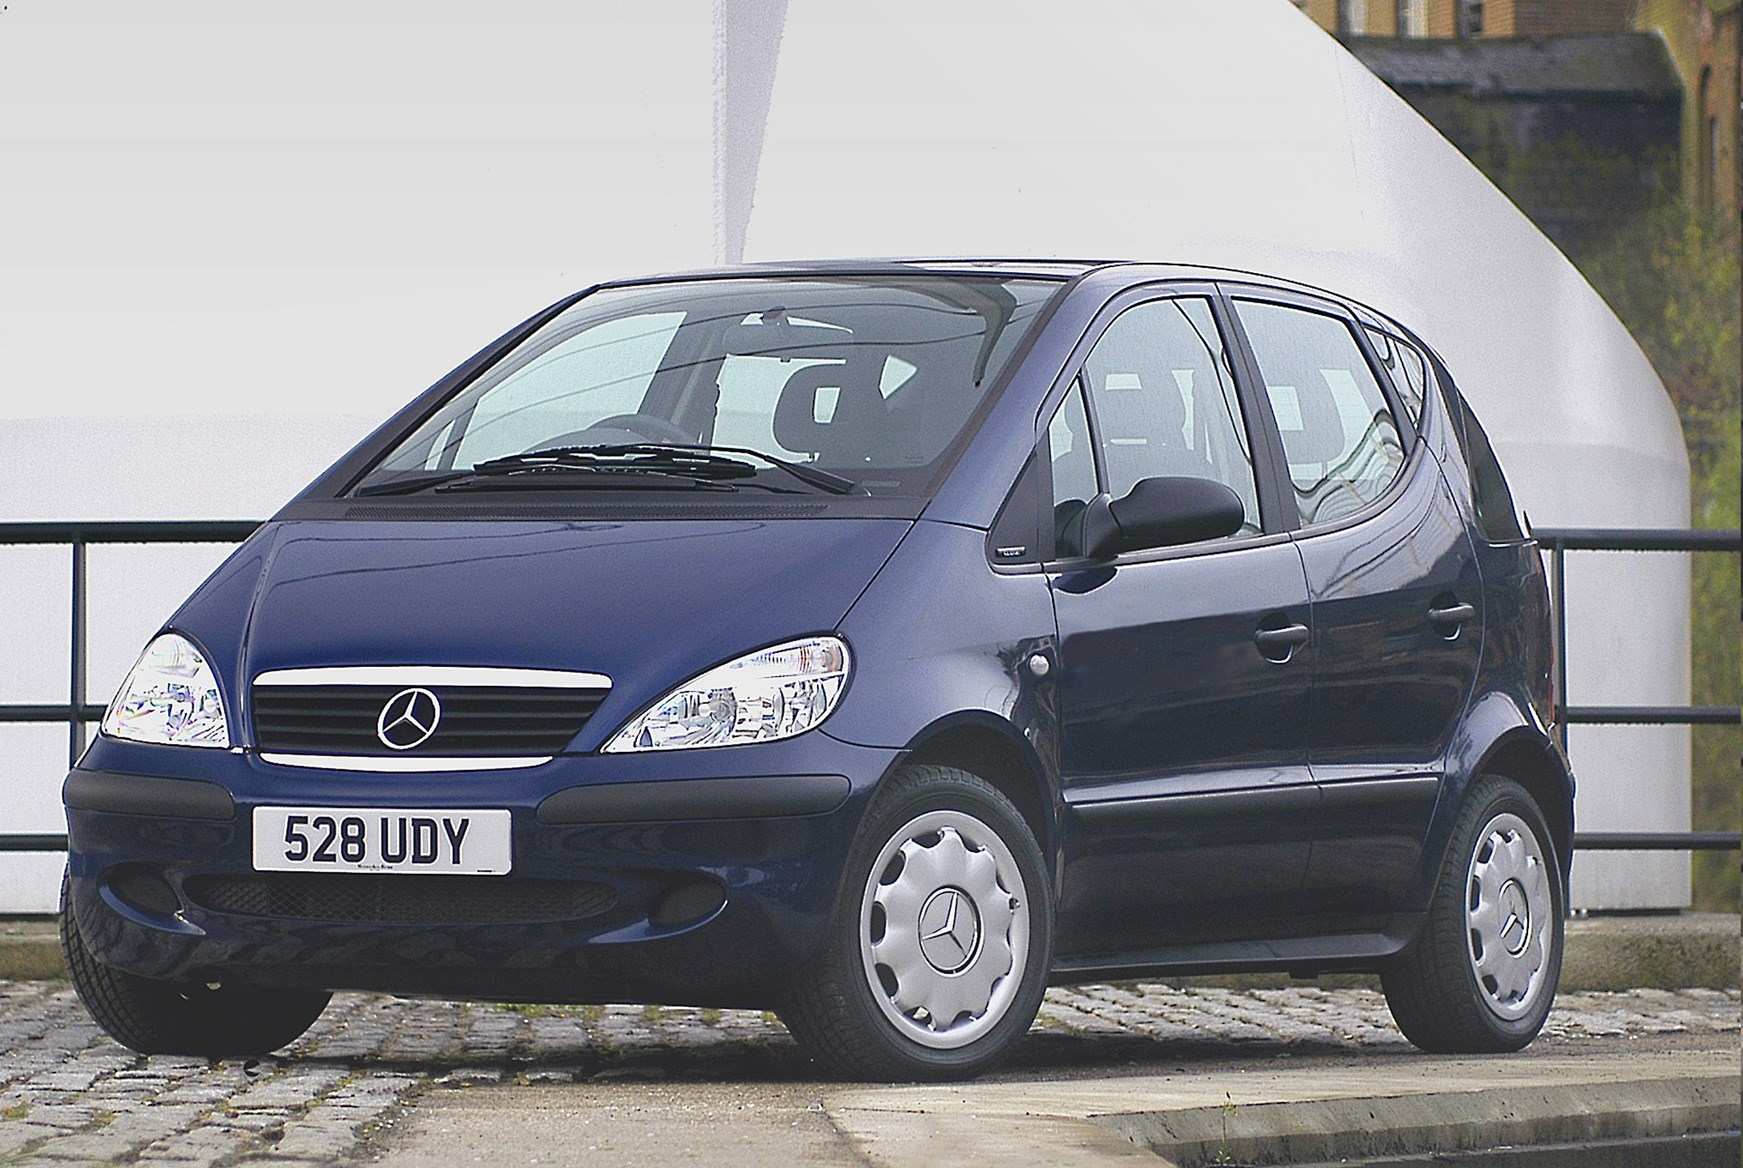 Mercedes benz a class hatchback review 1998 2004 parkers for Mercedes benz compact car